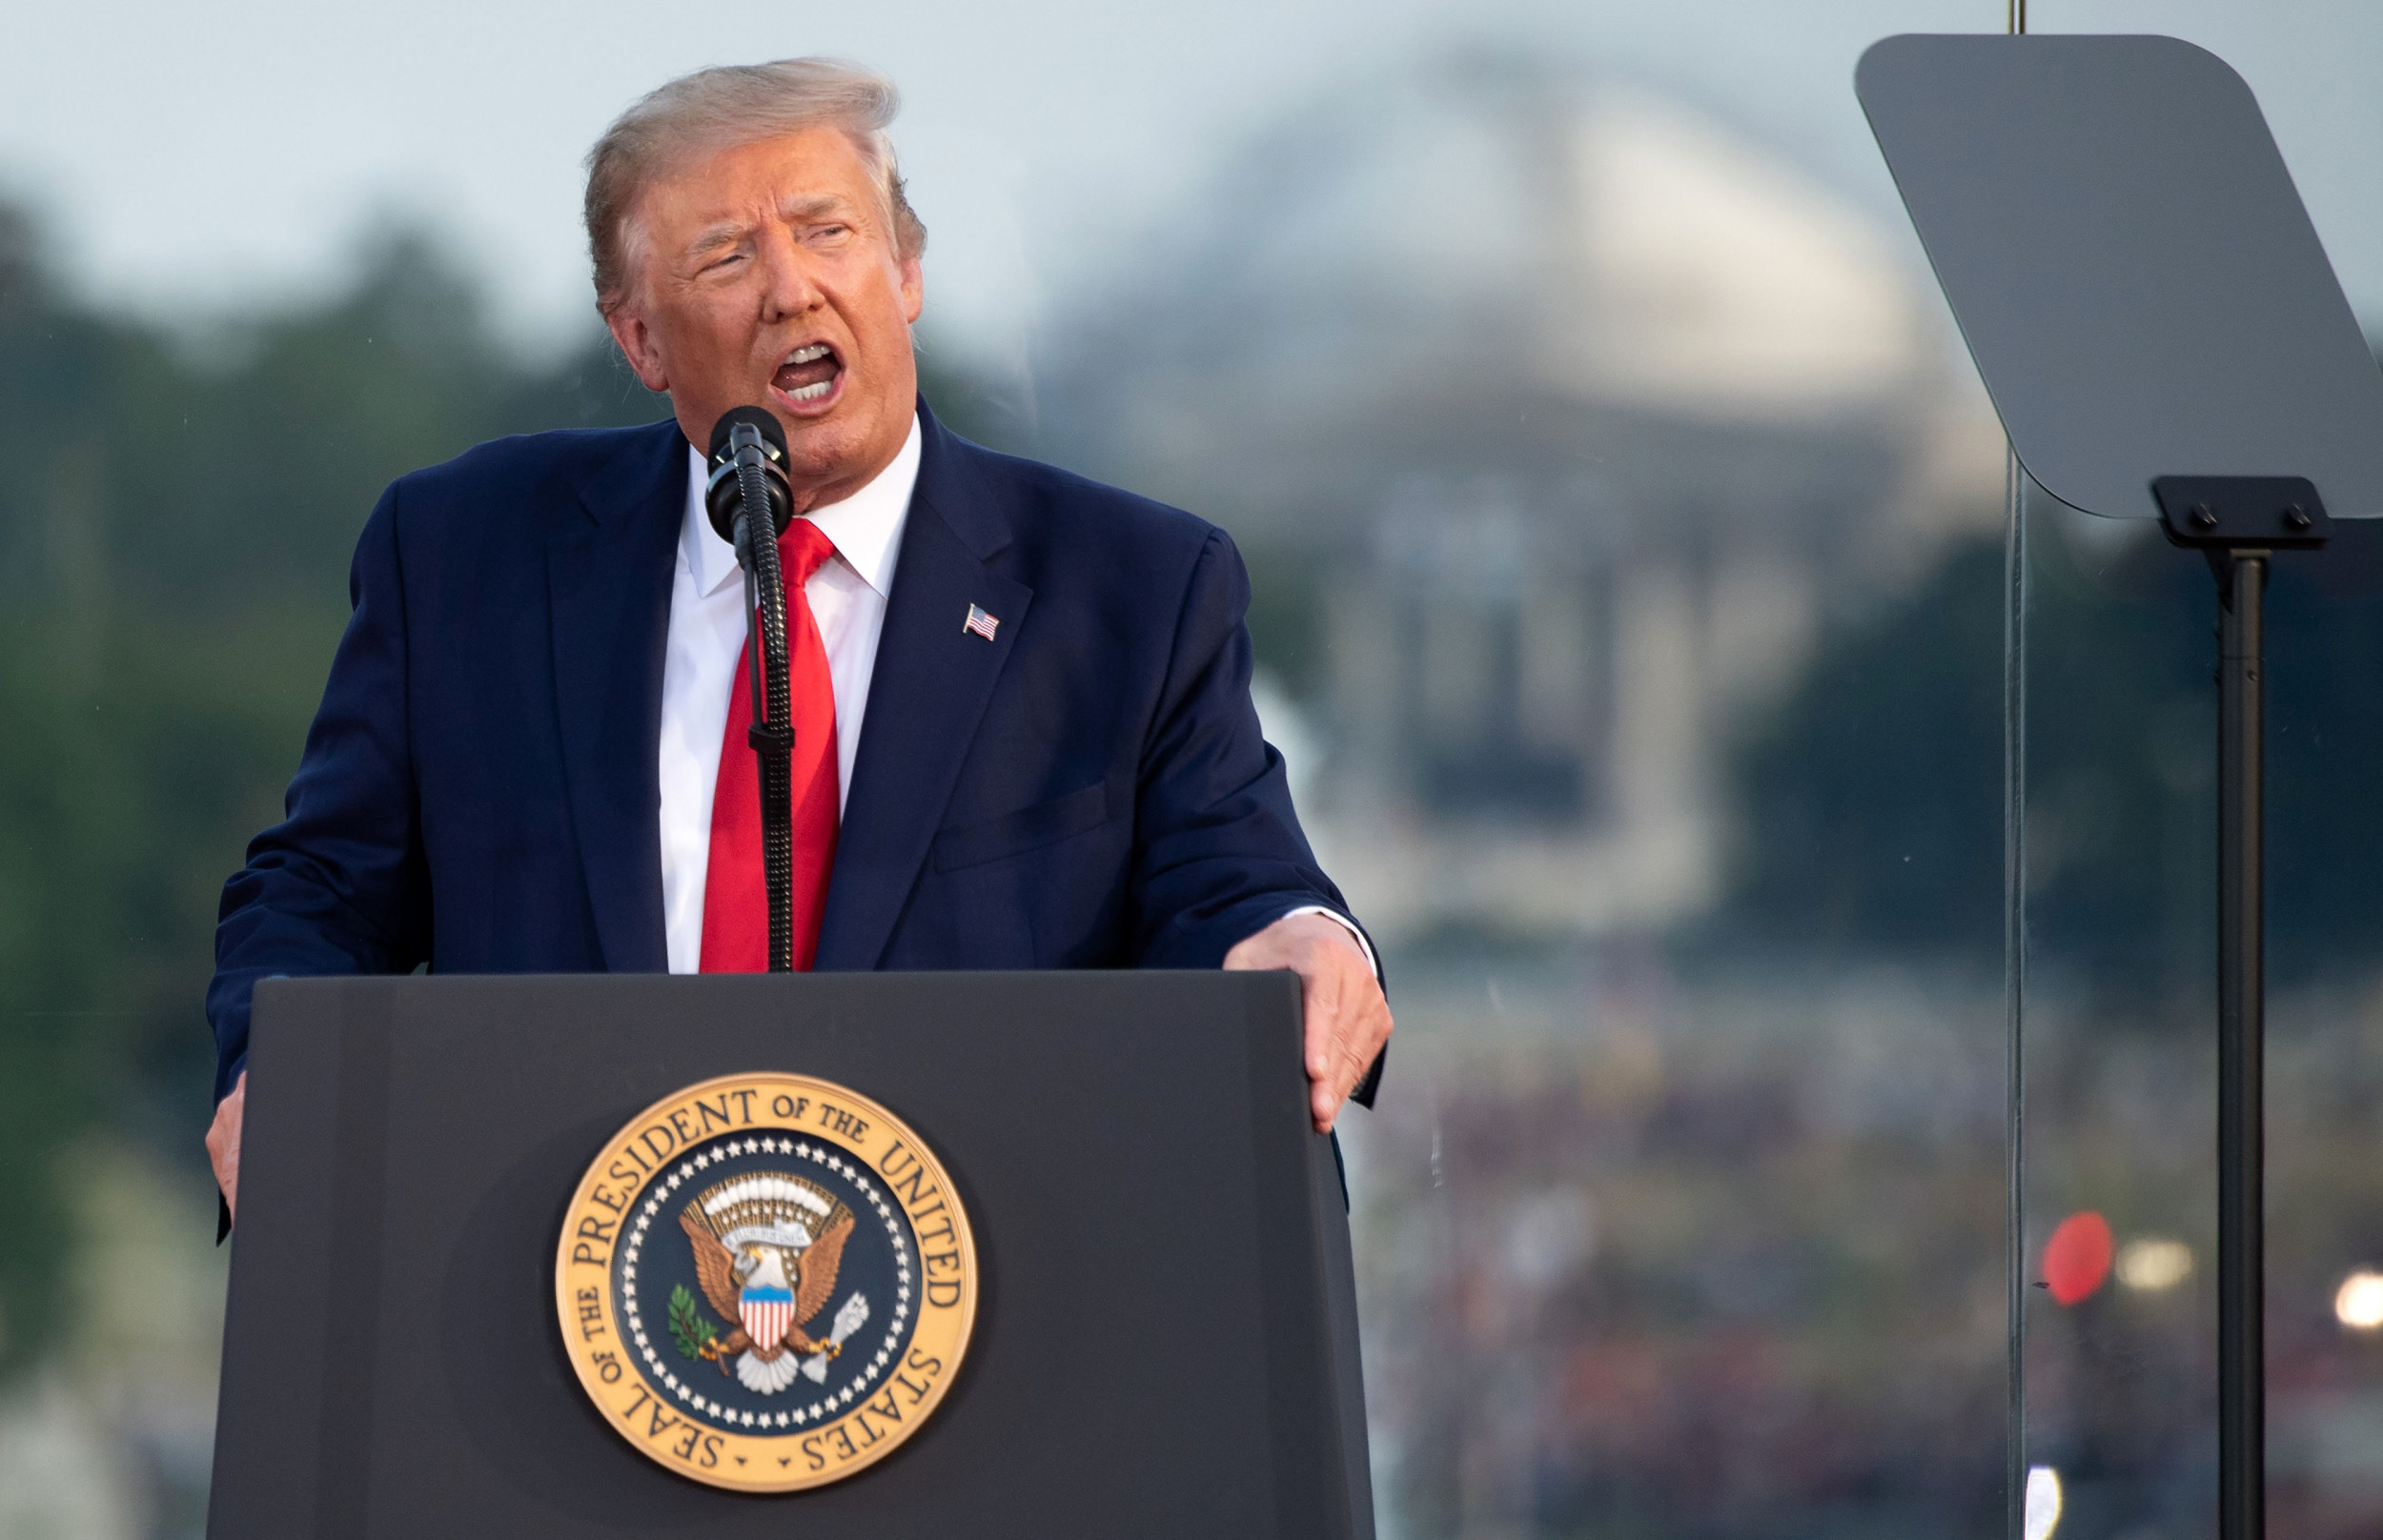 Trump appears to threaten CNN over network's July 4th speech coverage